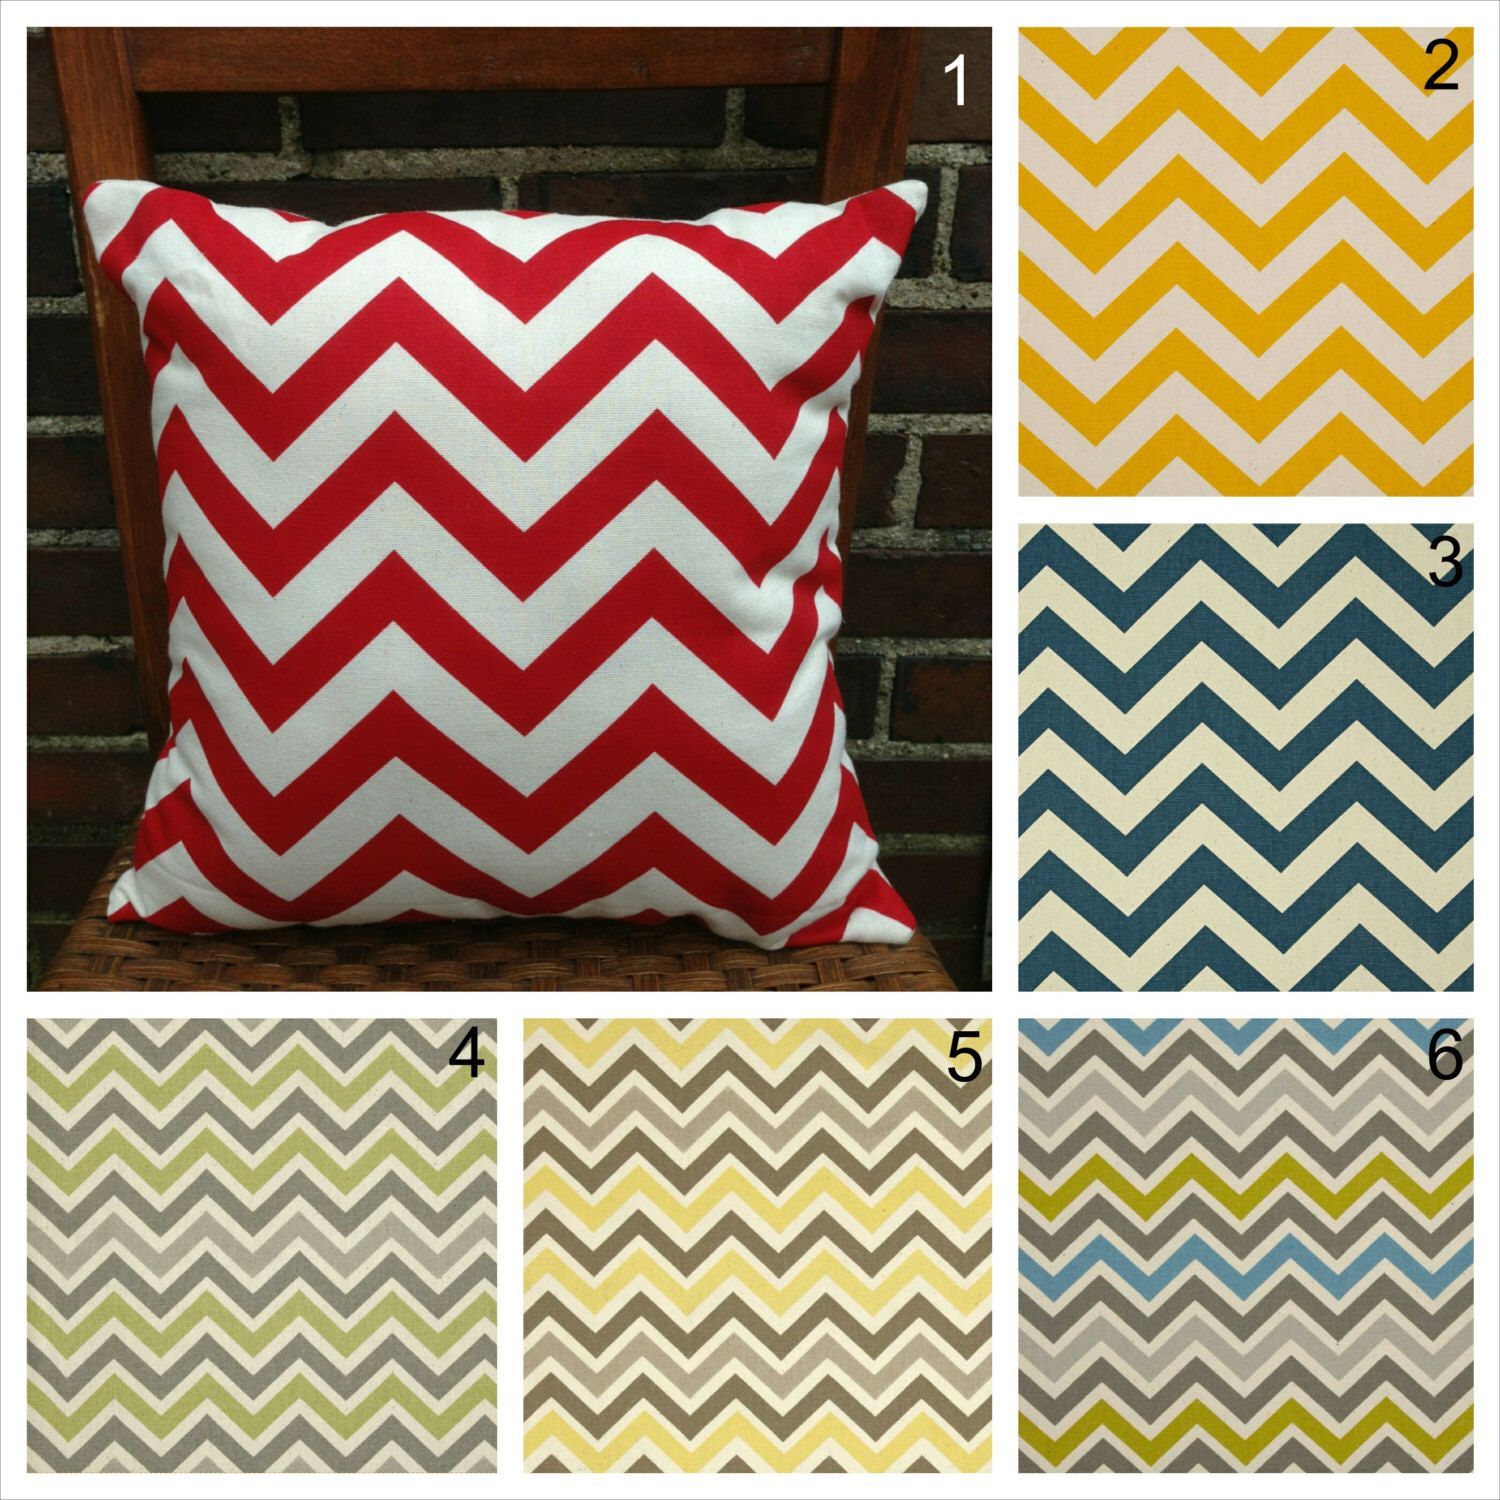 Red Yellow and Gray Chevron Decorative Throw Pillow Covers Couch Pillow Cover Sofa Pillow Cover Zippered